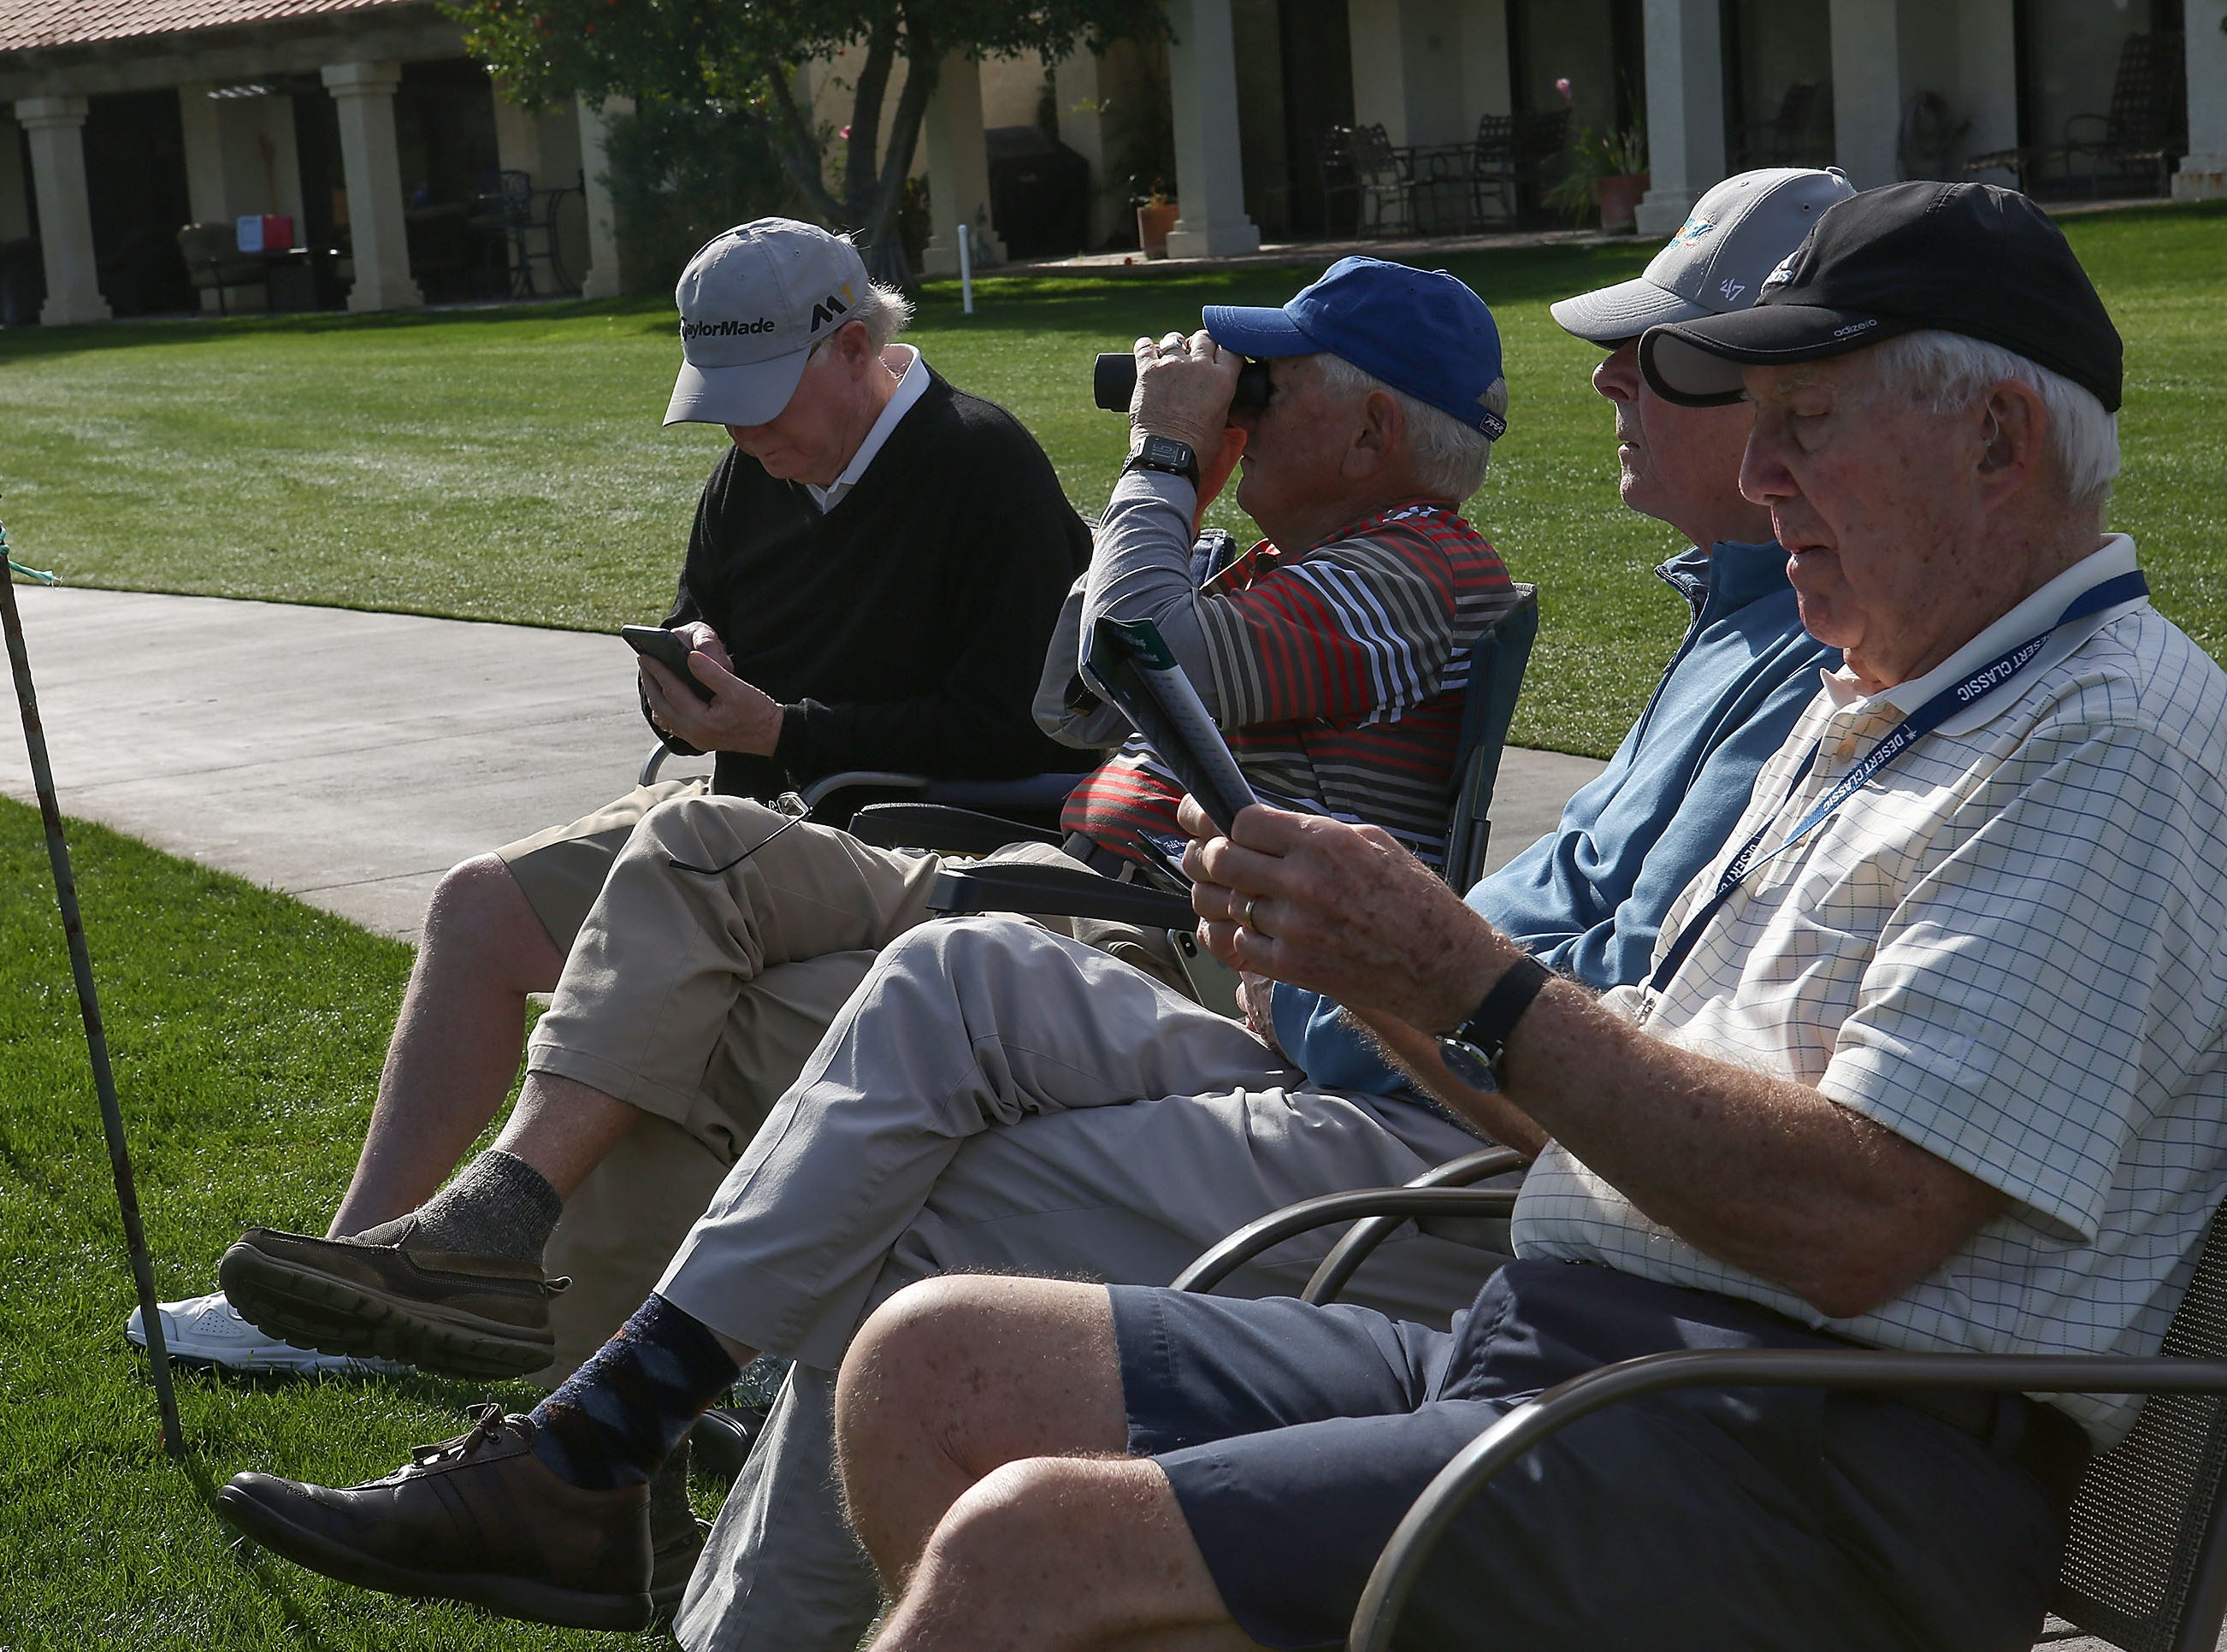 A group of men take in the golf action on the 10th teebox at La Quinta Country Club during the Desert Classic, January 18, 2019.